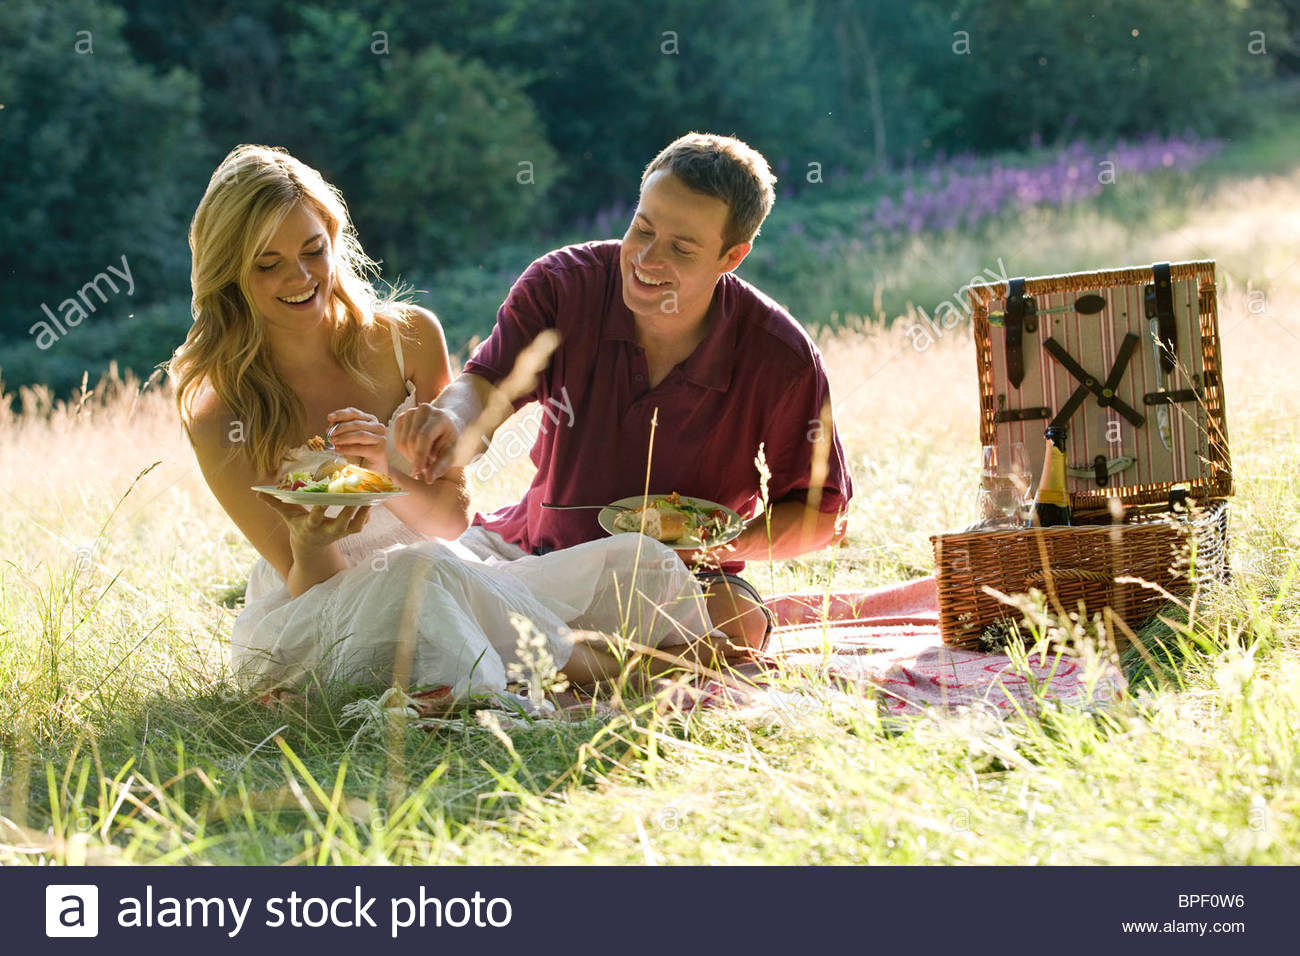 A young couple sitting on the grass, having a picnic - Stock Image